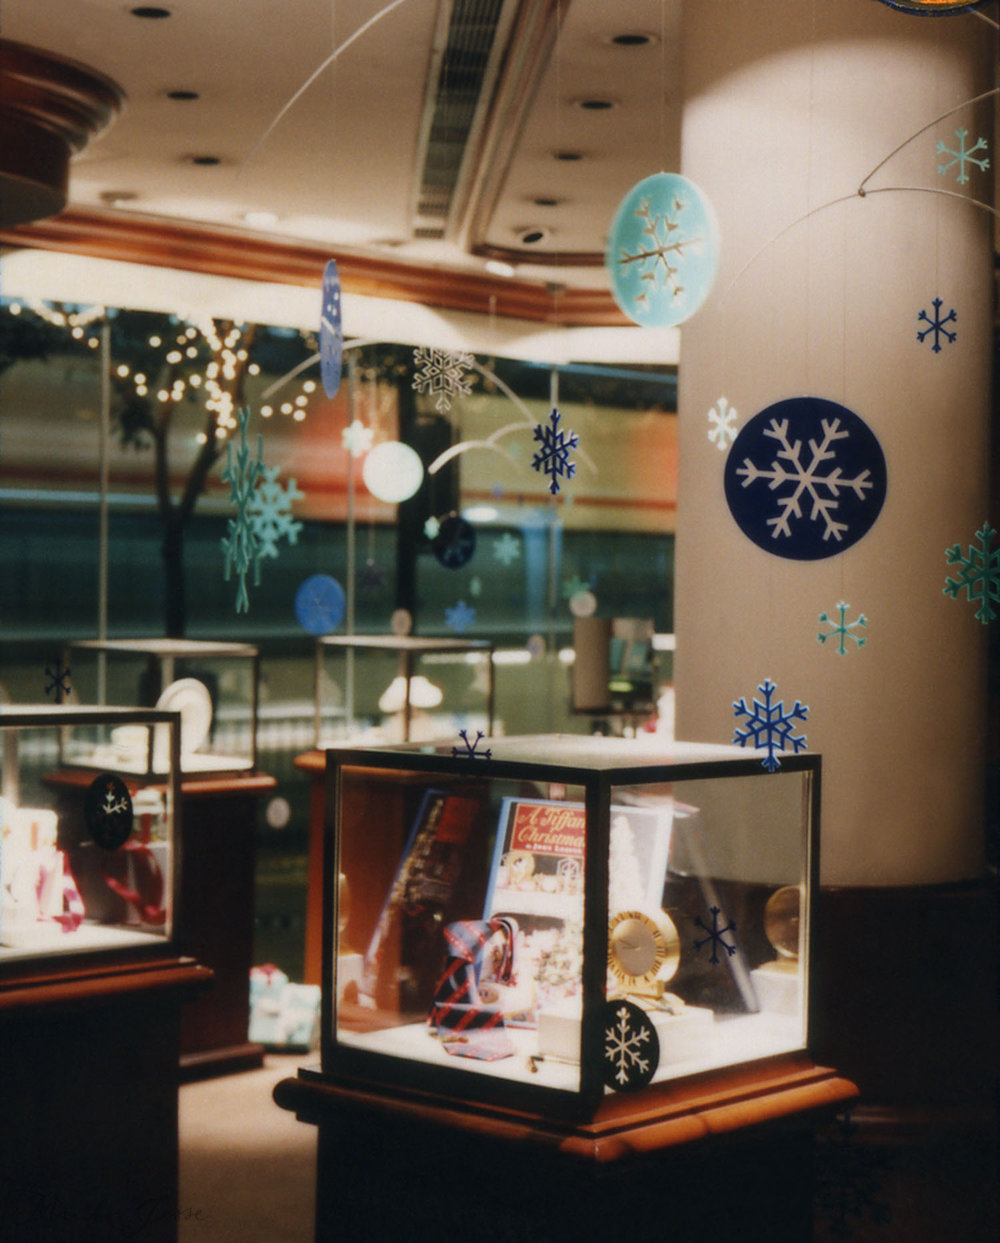 Tiffany & Co. instore display